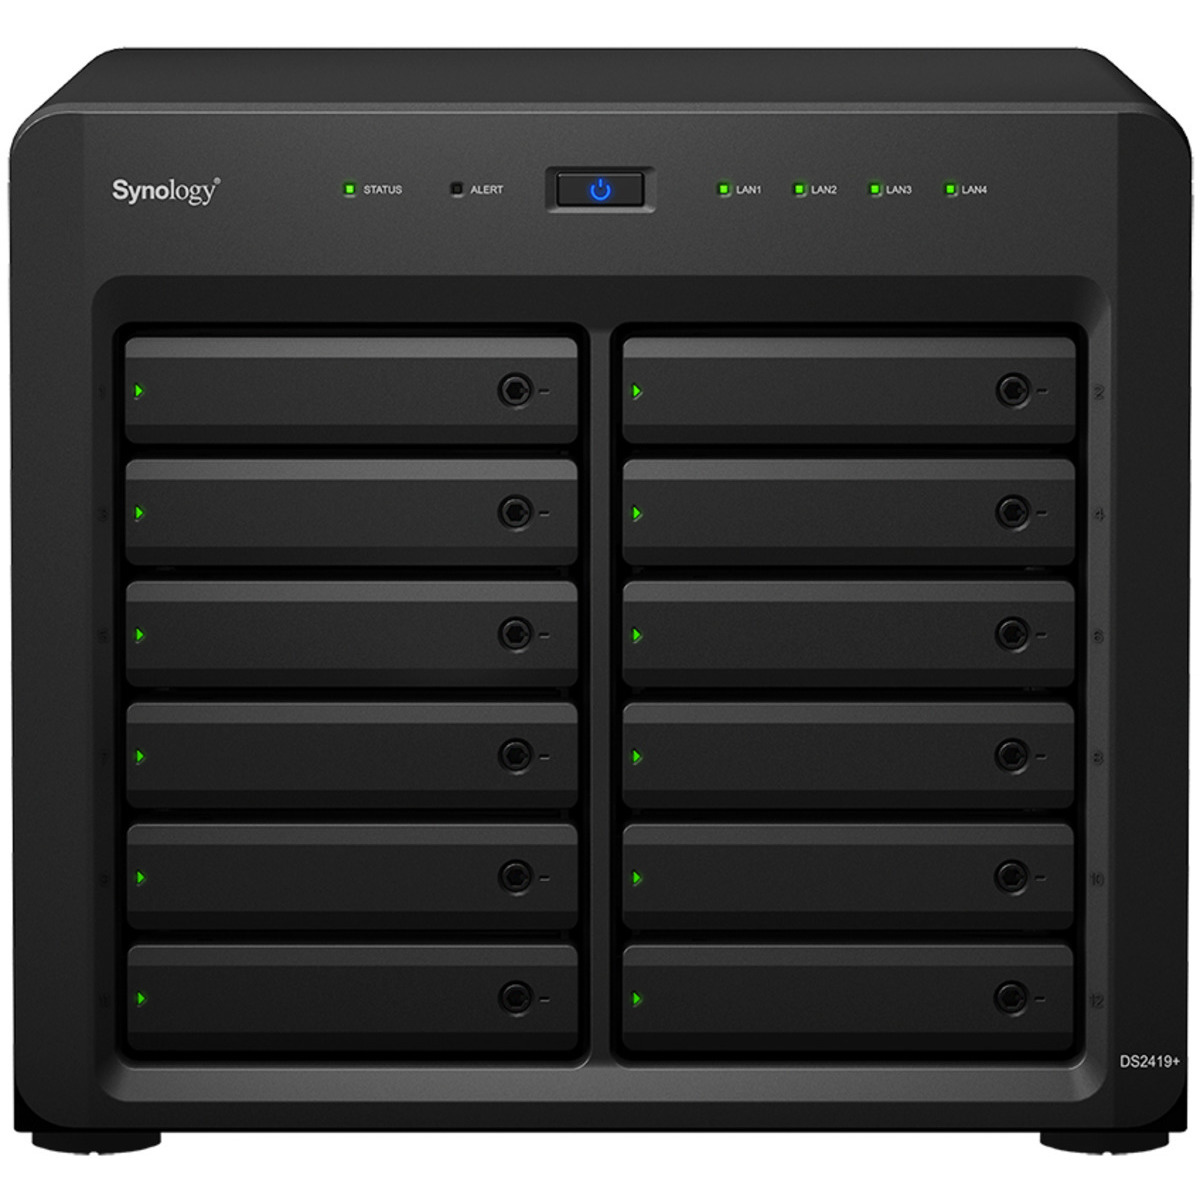 buy $3903 Synology DiskStation DS2419+ 48tb Desktop NAS - Network Attached Storage Device 12x4000gb Seagate IronWolf Pro ST4000NE001 3.5 7200rpm SATA 6Gb/s HDD NAS Class Drives Installed - Burn-In Tested - nas headquarters buy network attached storage server device das new raid-5 free shipping usa holiday new year clearance sale DiskStation DS2419+